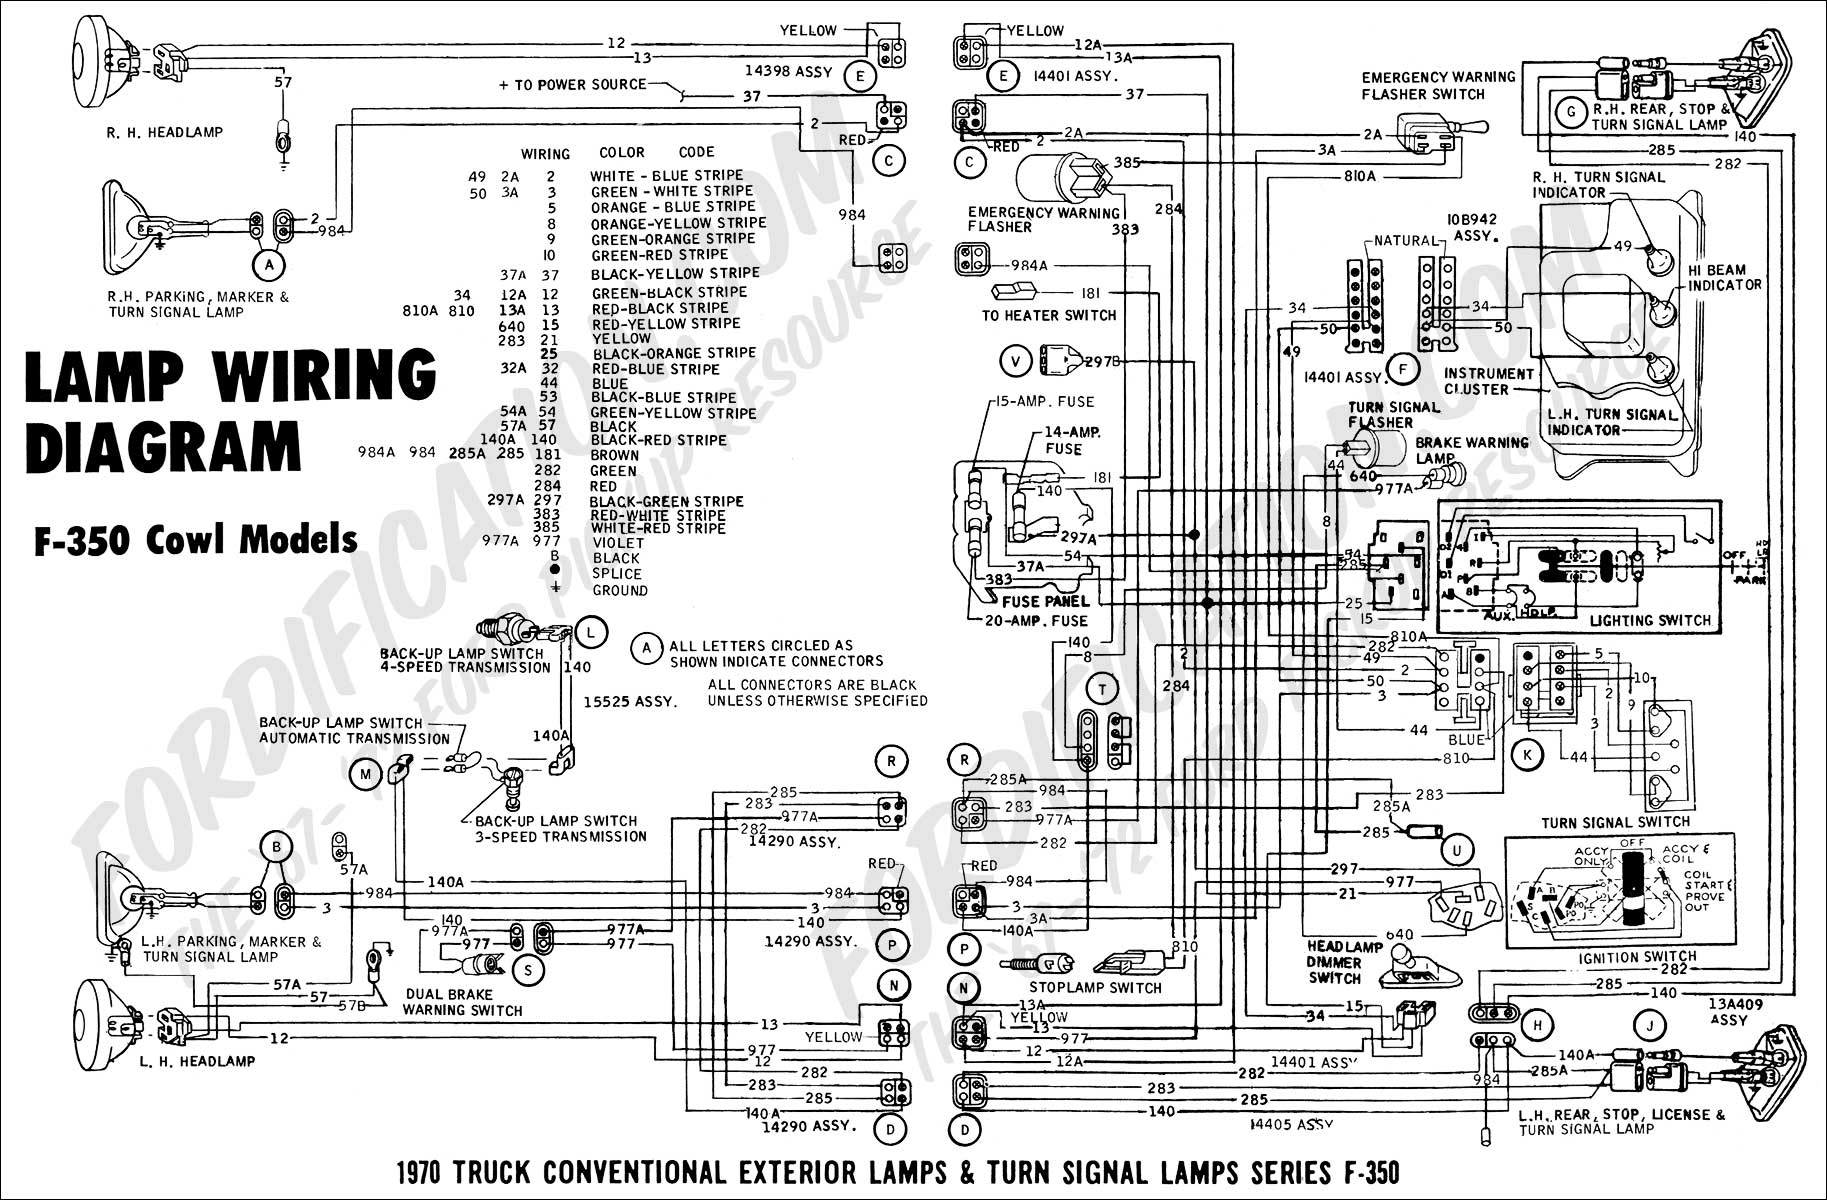 1995 Ford F350 Wiring Harness | Manual E-Books - Econoline Trailer Wiring Diagram